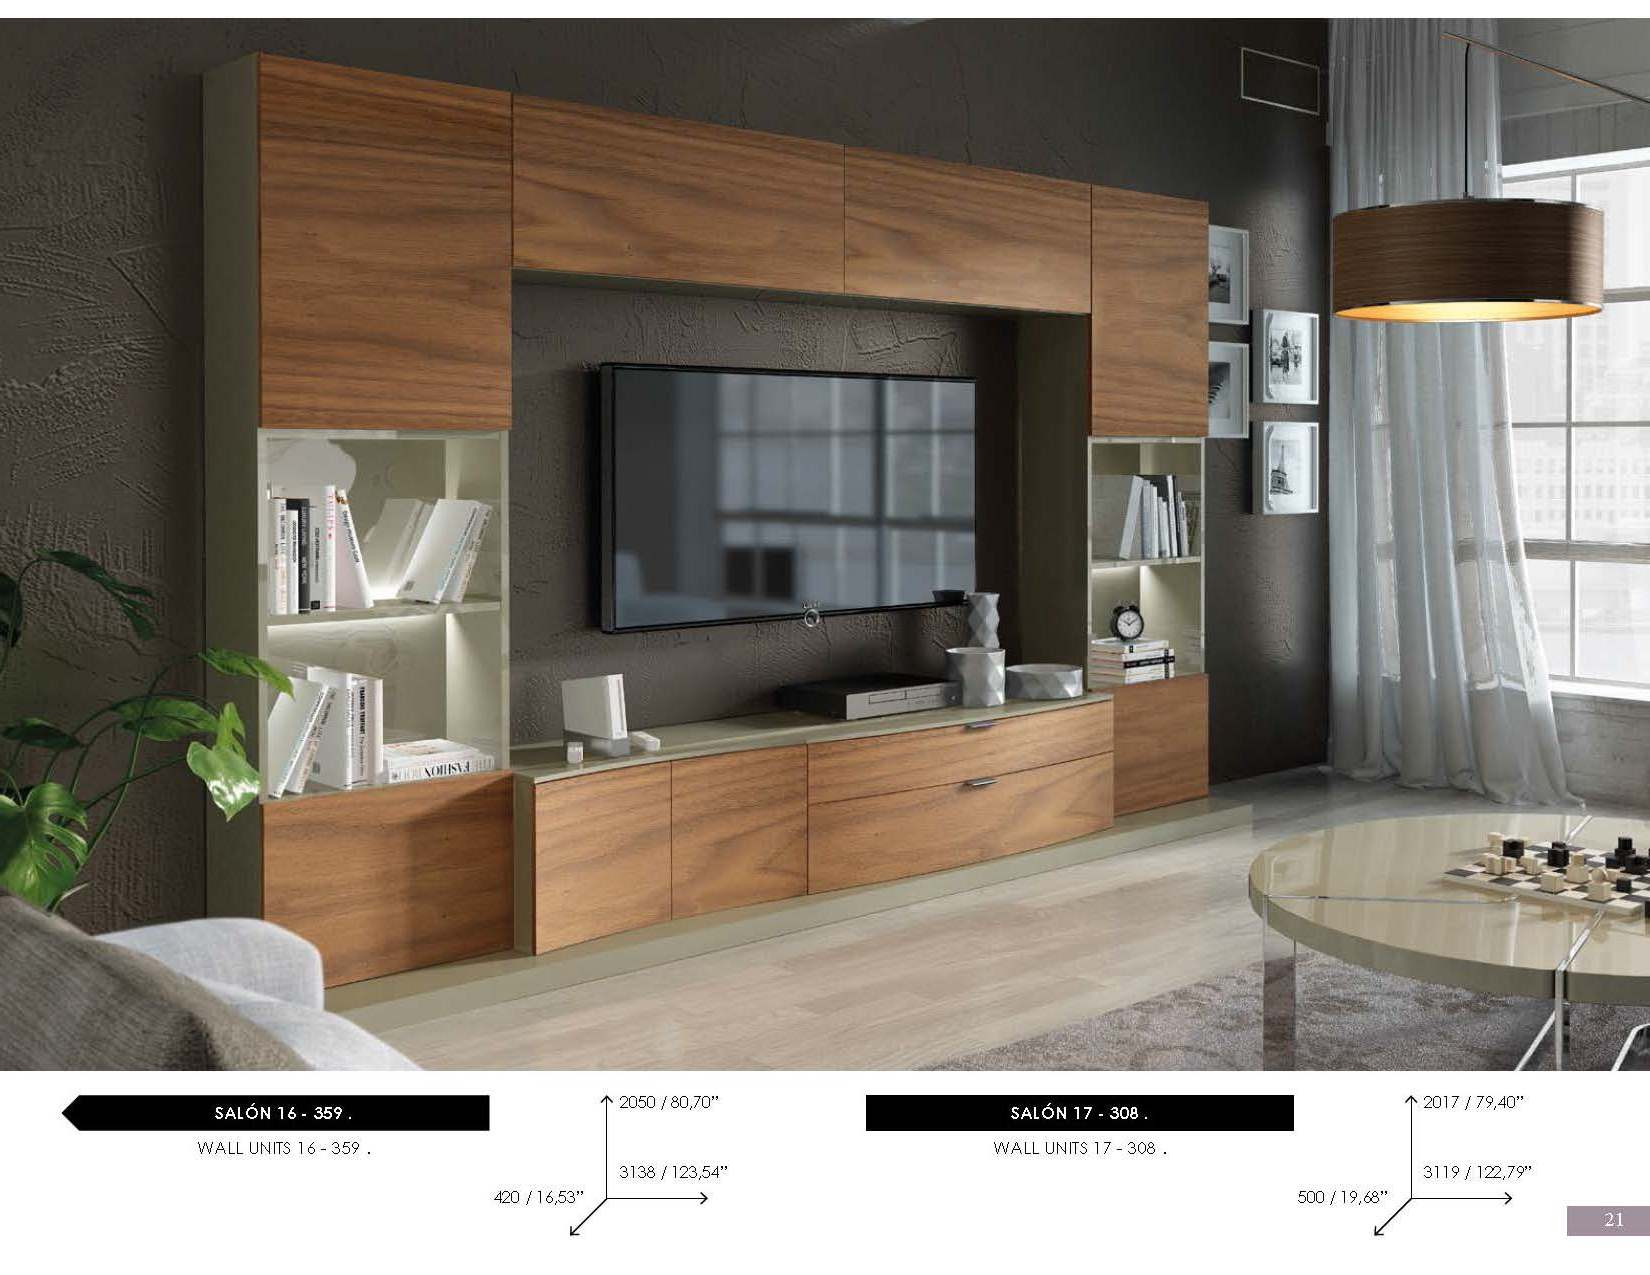 Brands Fenicia Wall Units, Spain Fenicia Wall Unit Salon 17